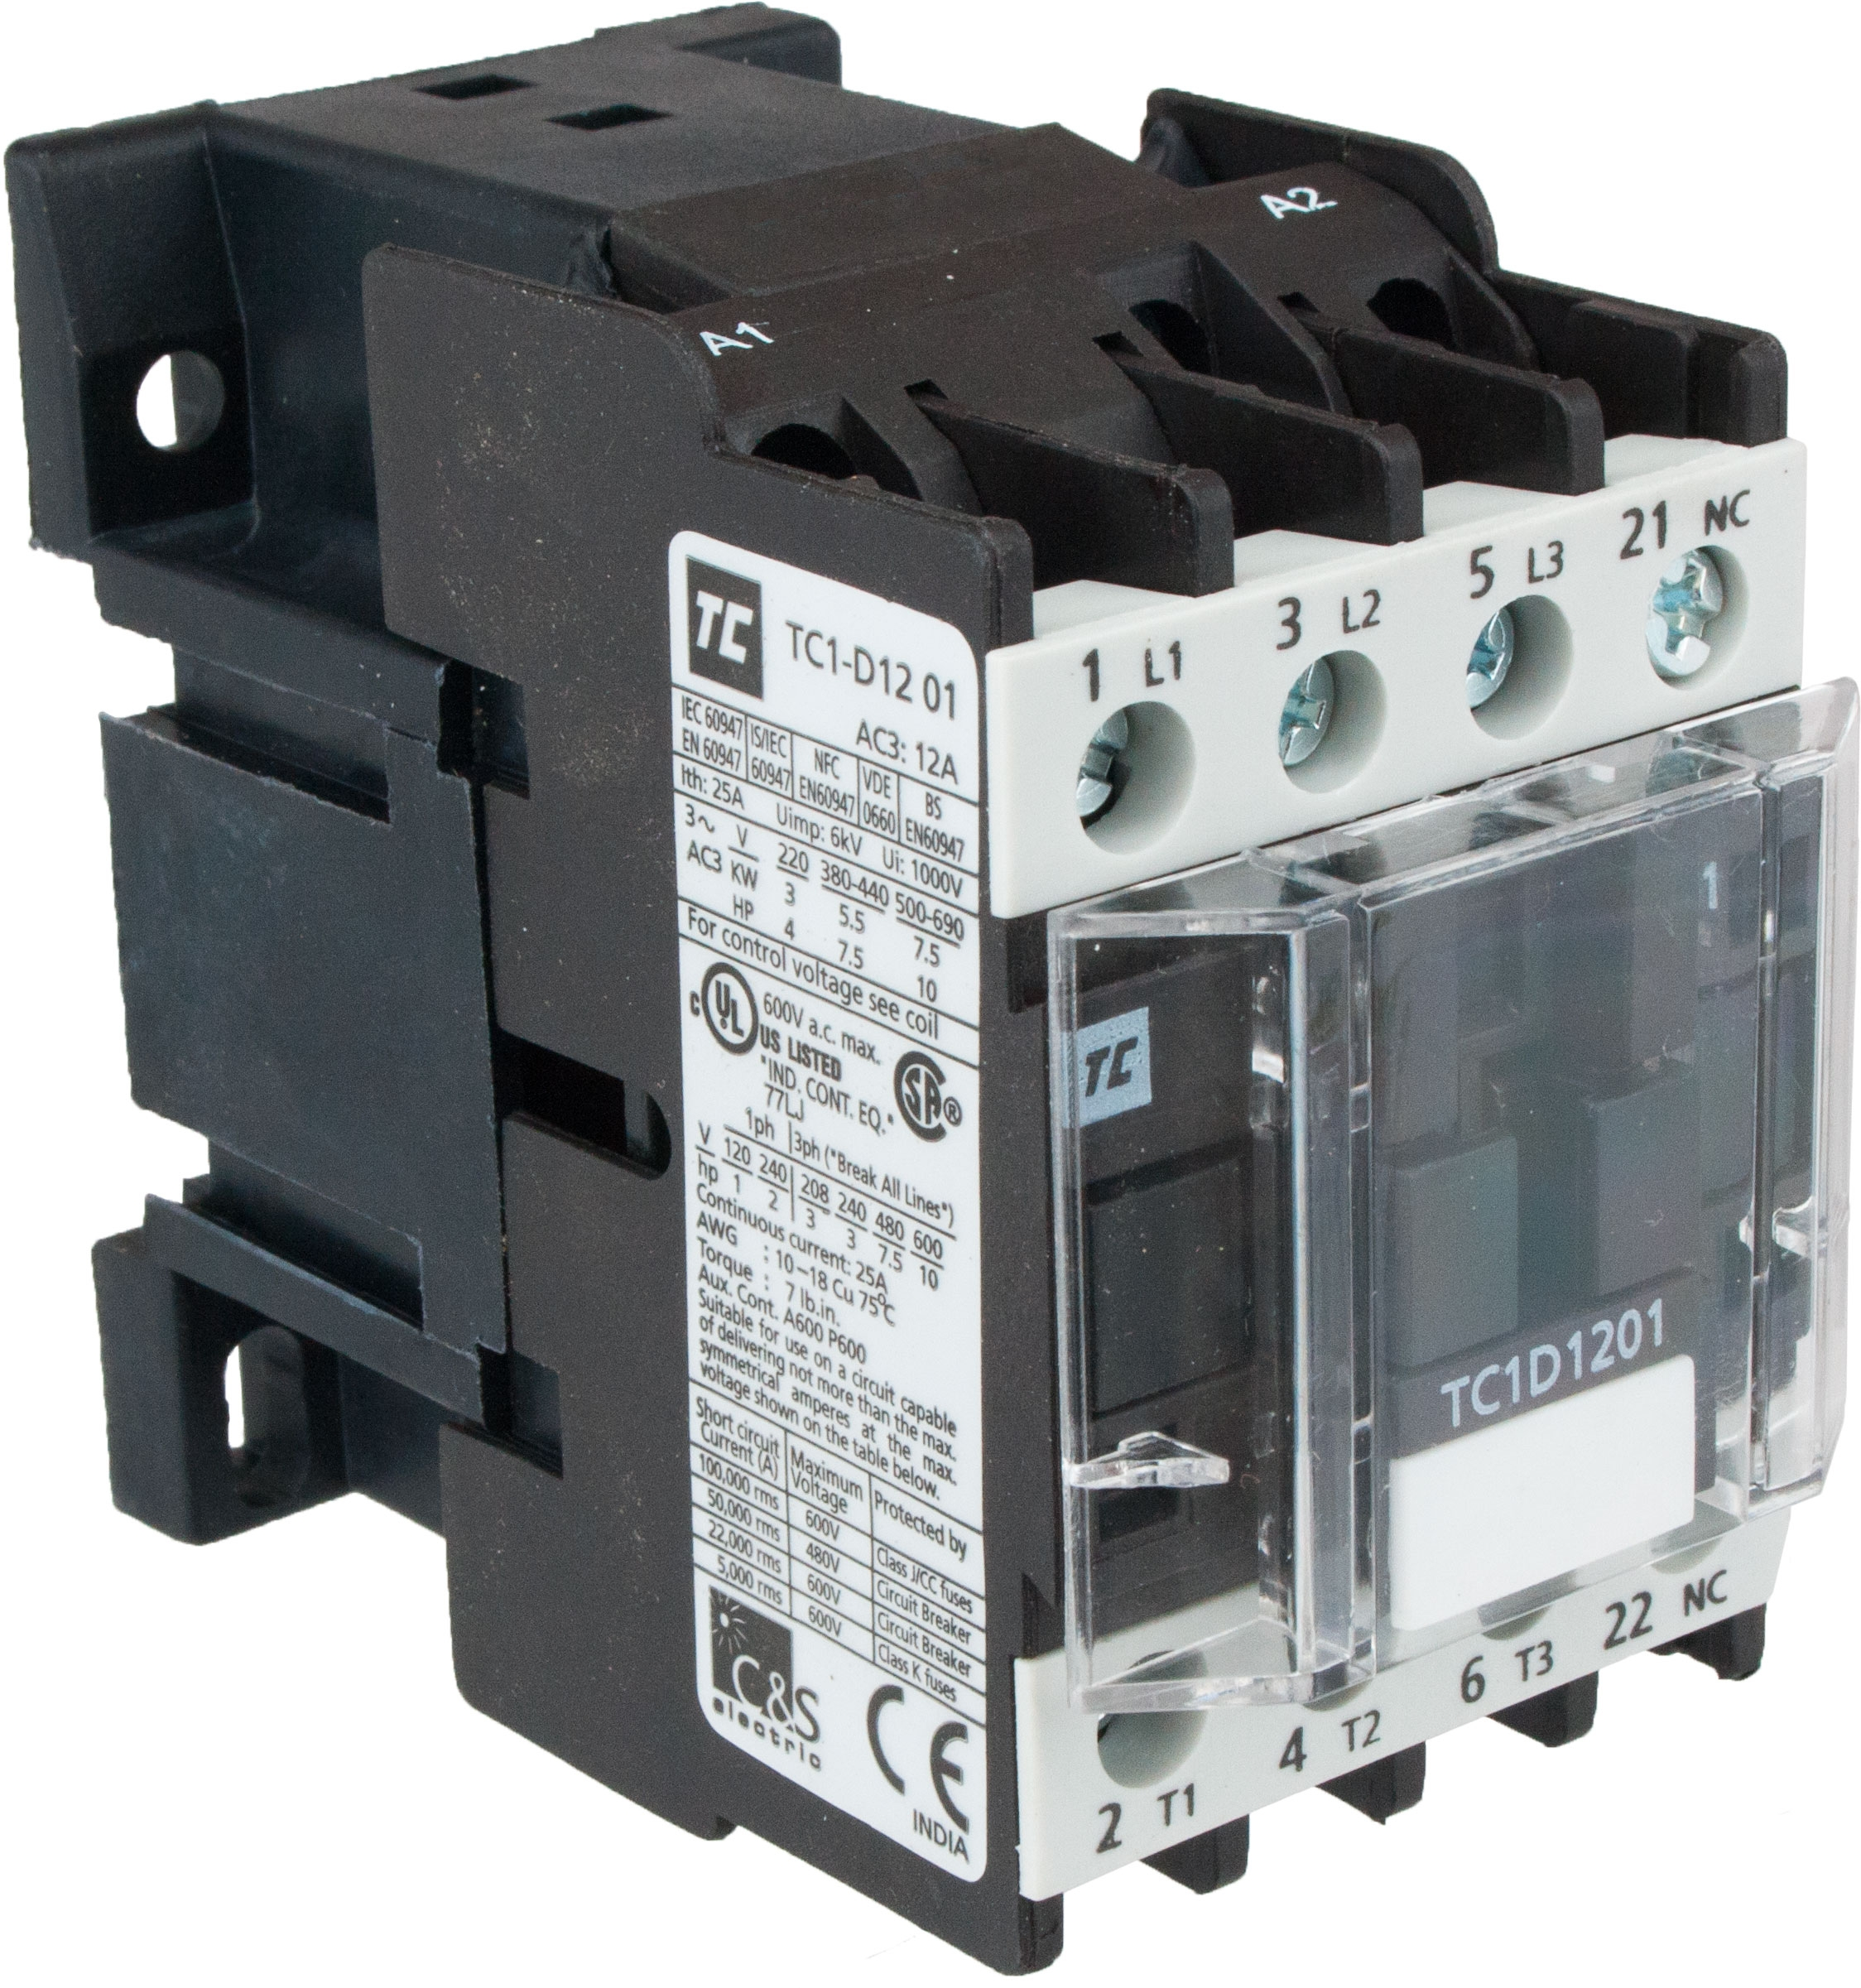 3 Pole Contactor 12 Amp 220 Vac Coil Tc1d1201m7 Elecdirect Wiring